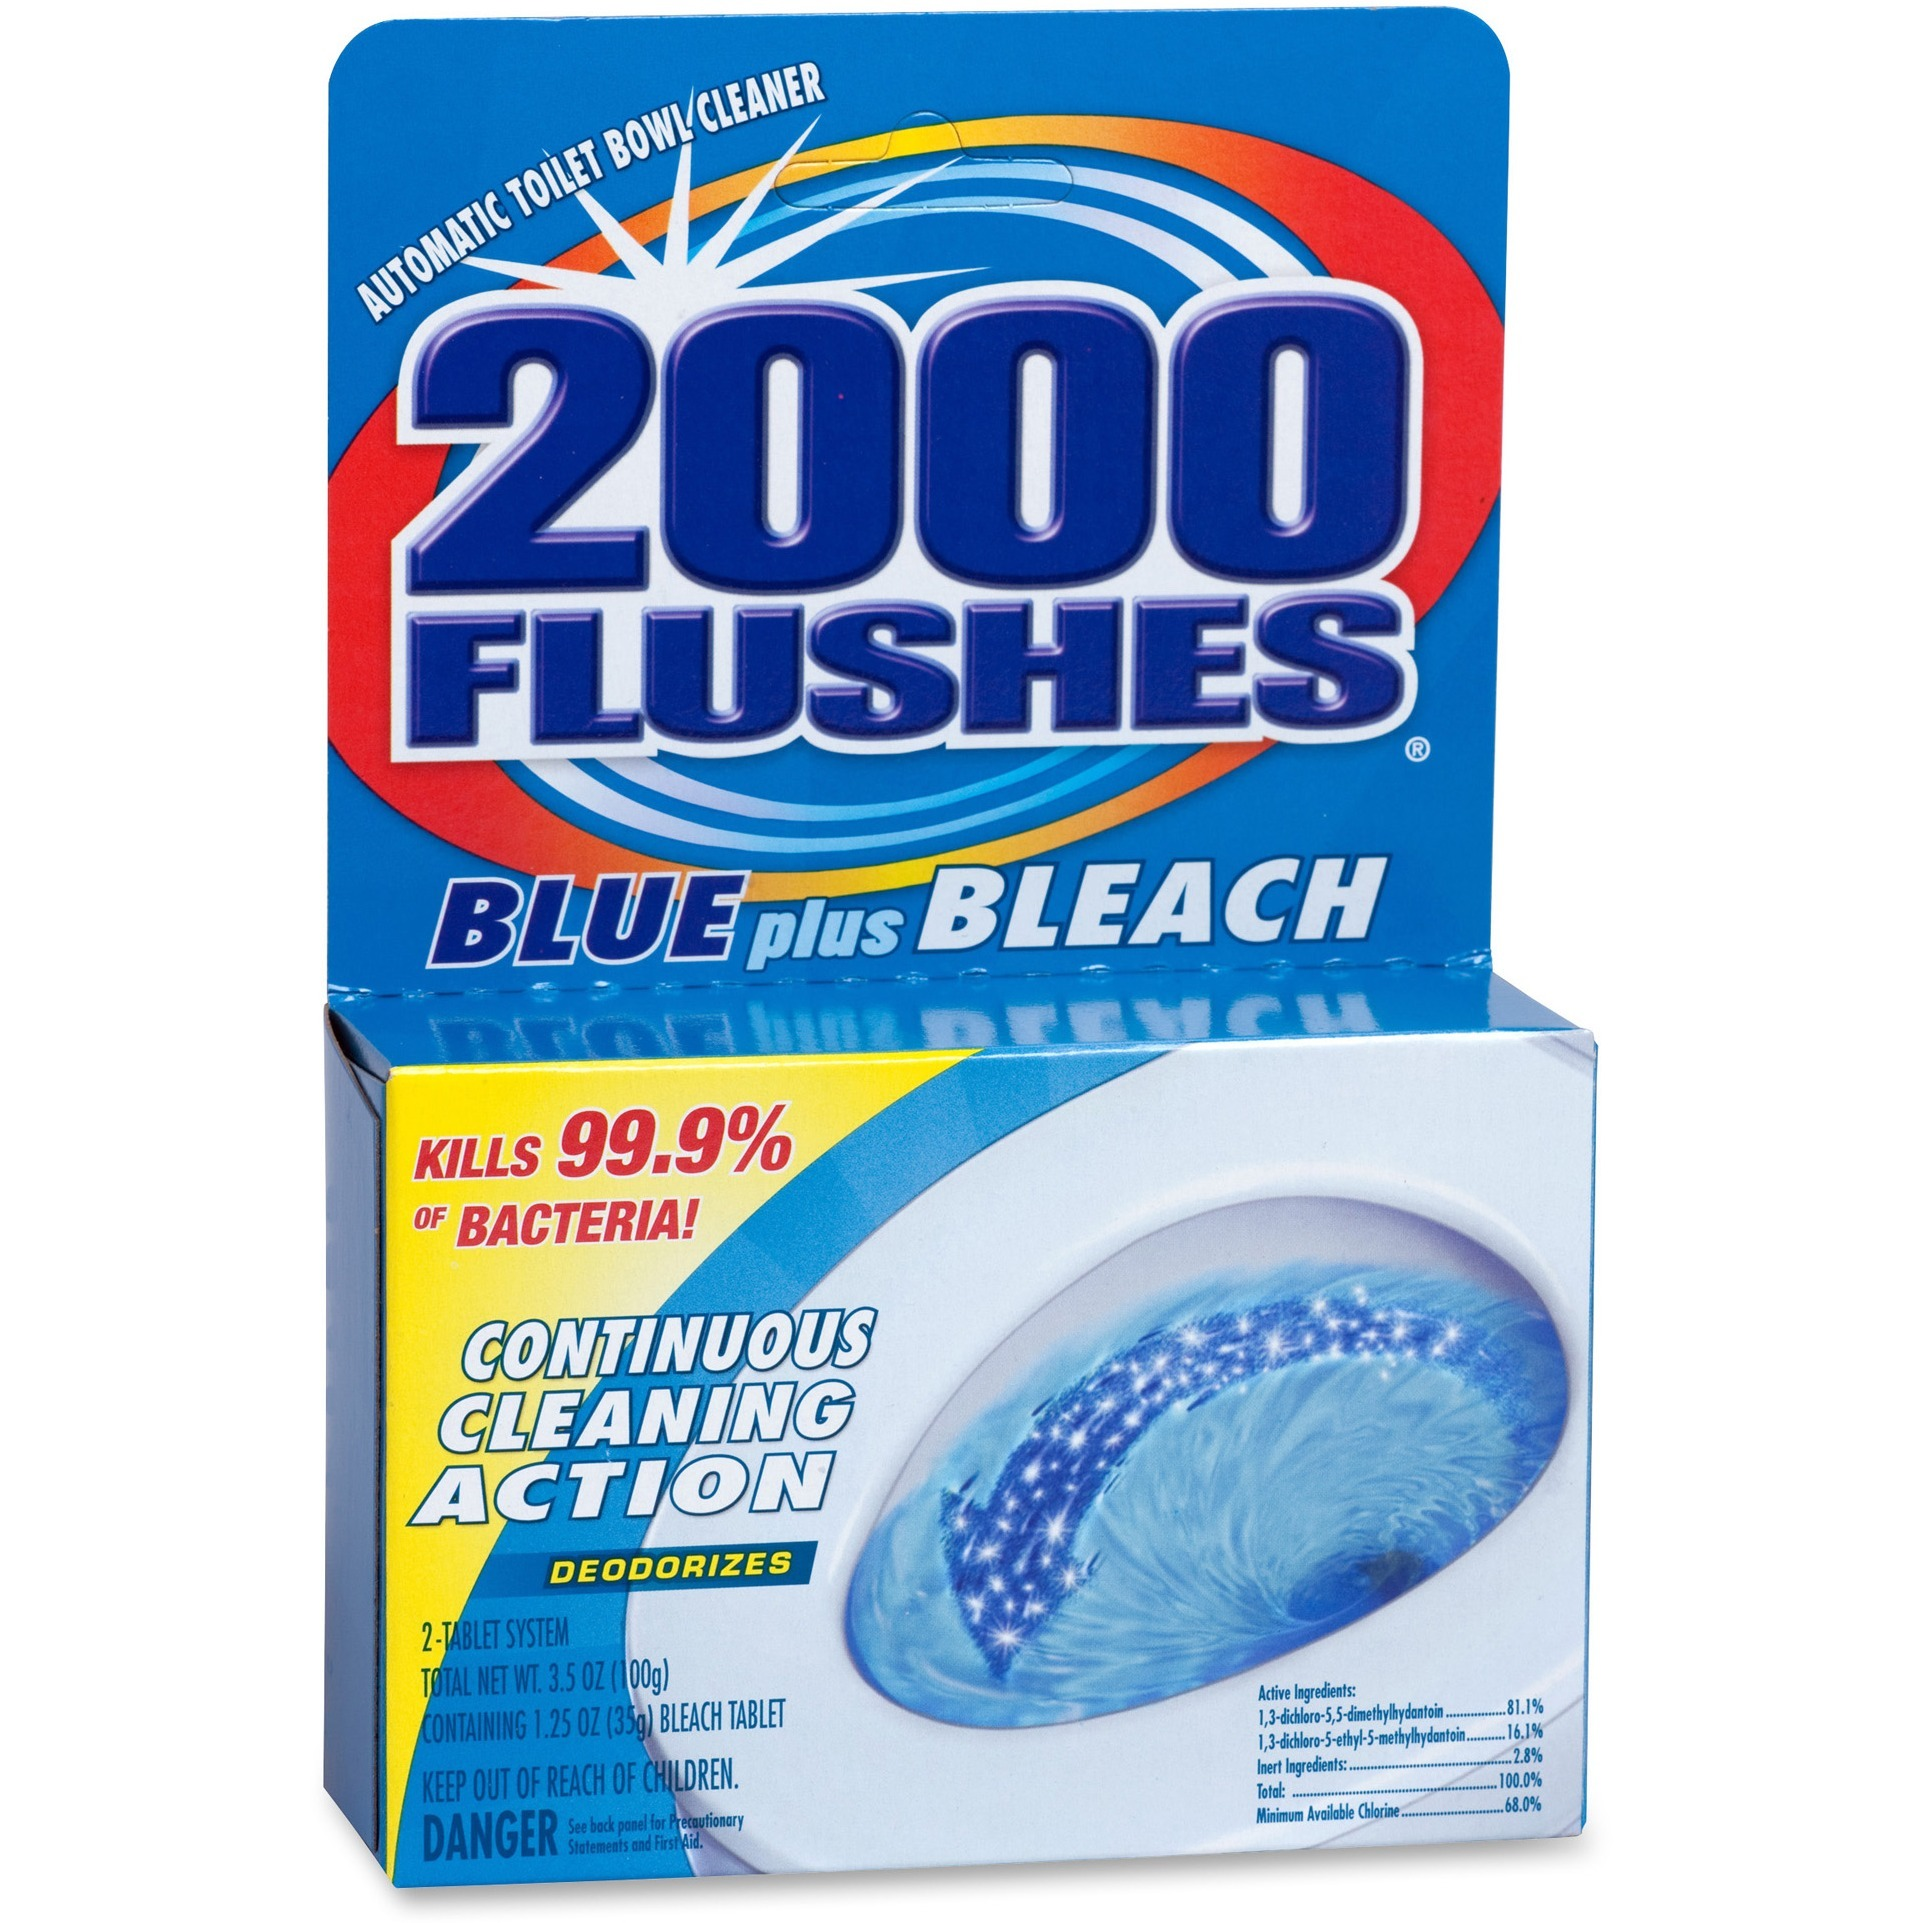 WD-40, WDF208017CT, 2000 Flushes Blue/Bleach Bowl Cleaner Tablets, 12 / Carton, Blue